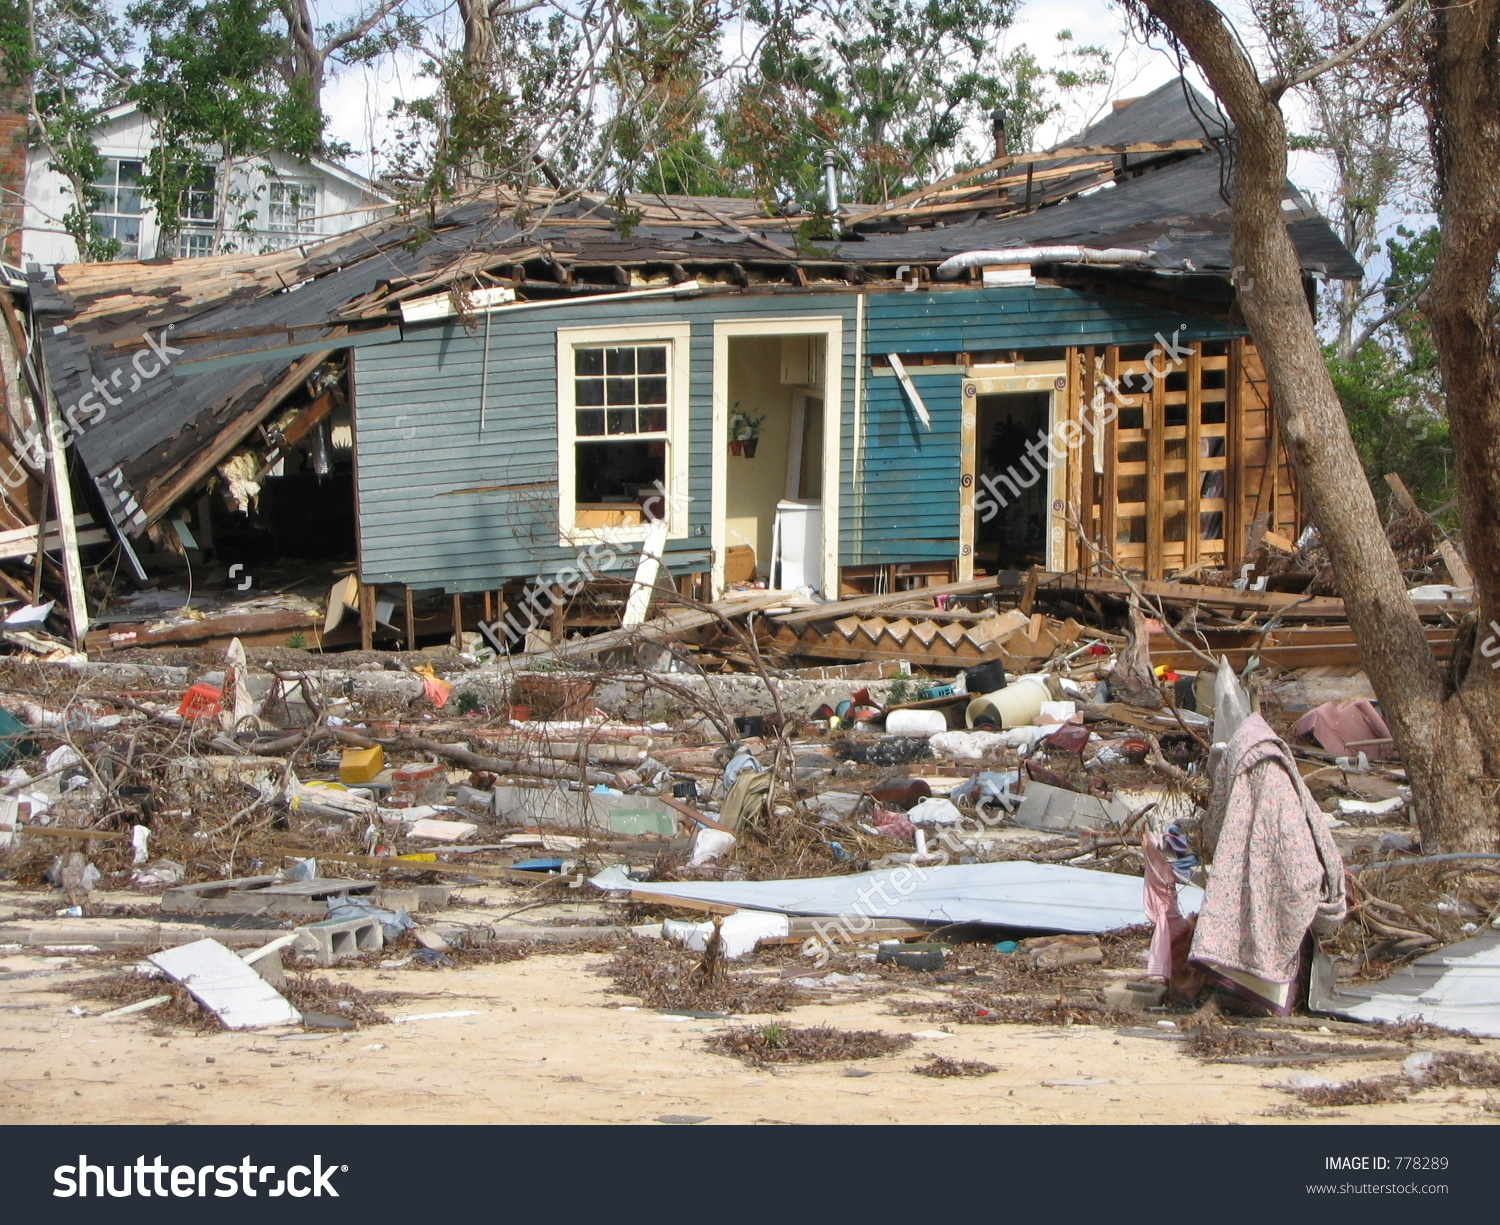 Hurricane Katrina Wind Storm Surge Damage Stock Photo 778289.